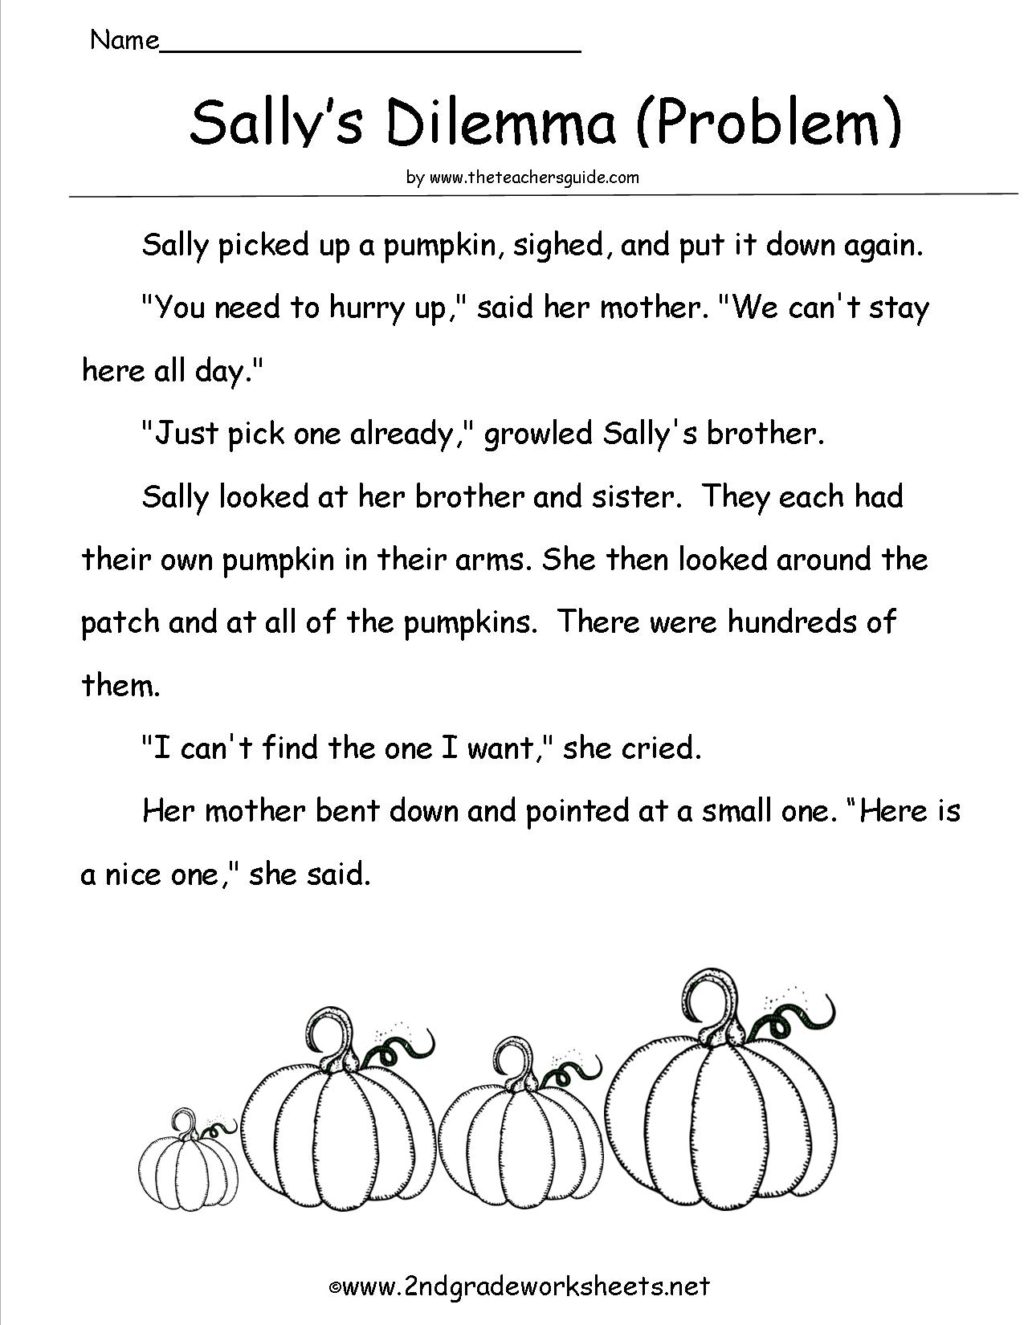 Worksheet ~ Sallysproblem Halloween Worksheets And Printouts